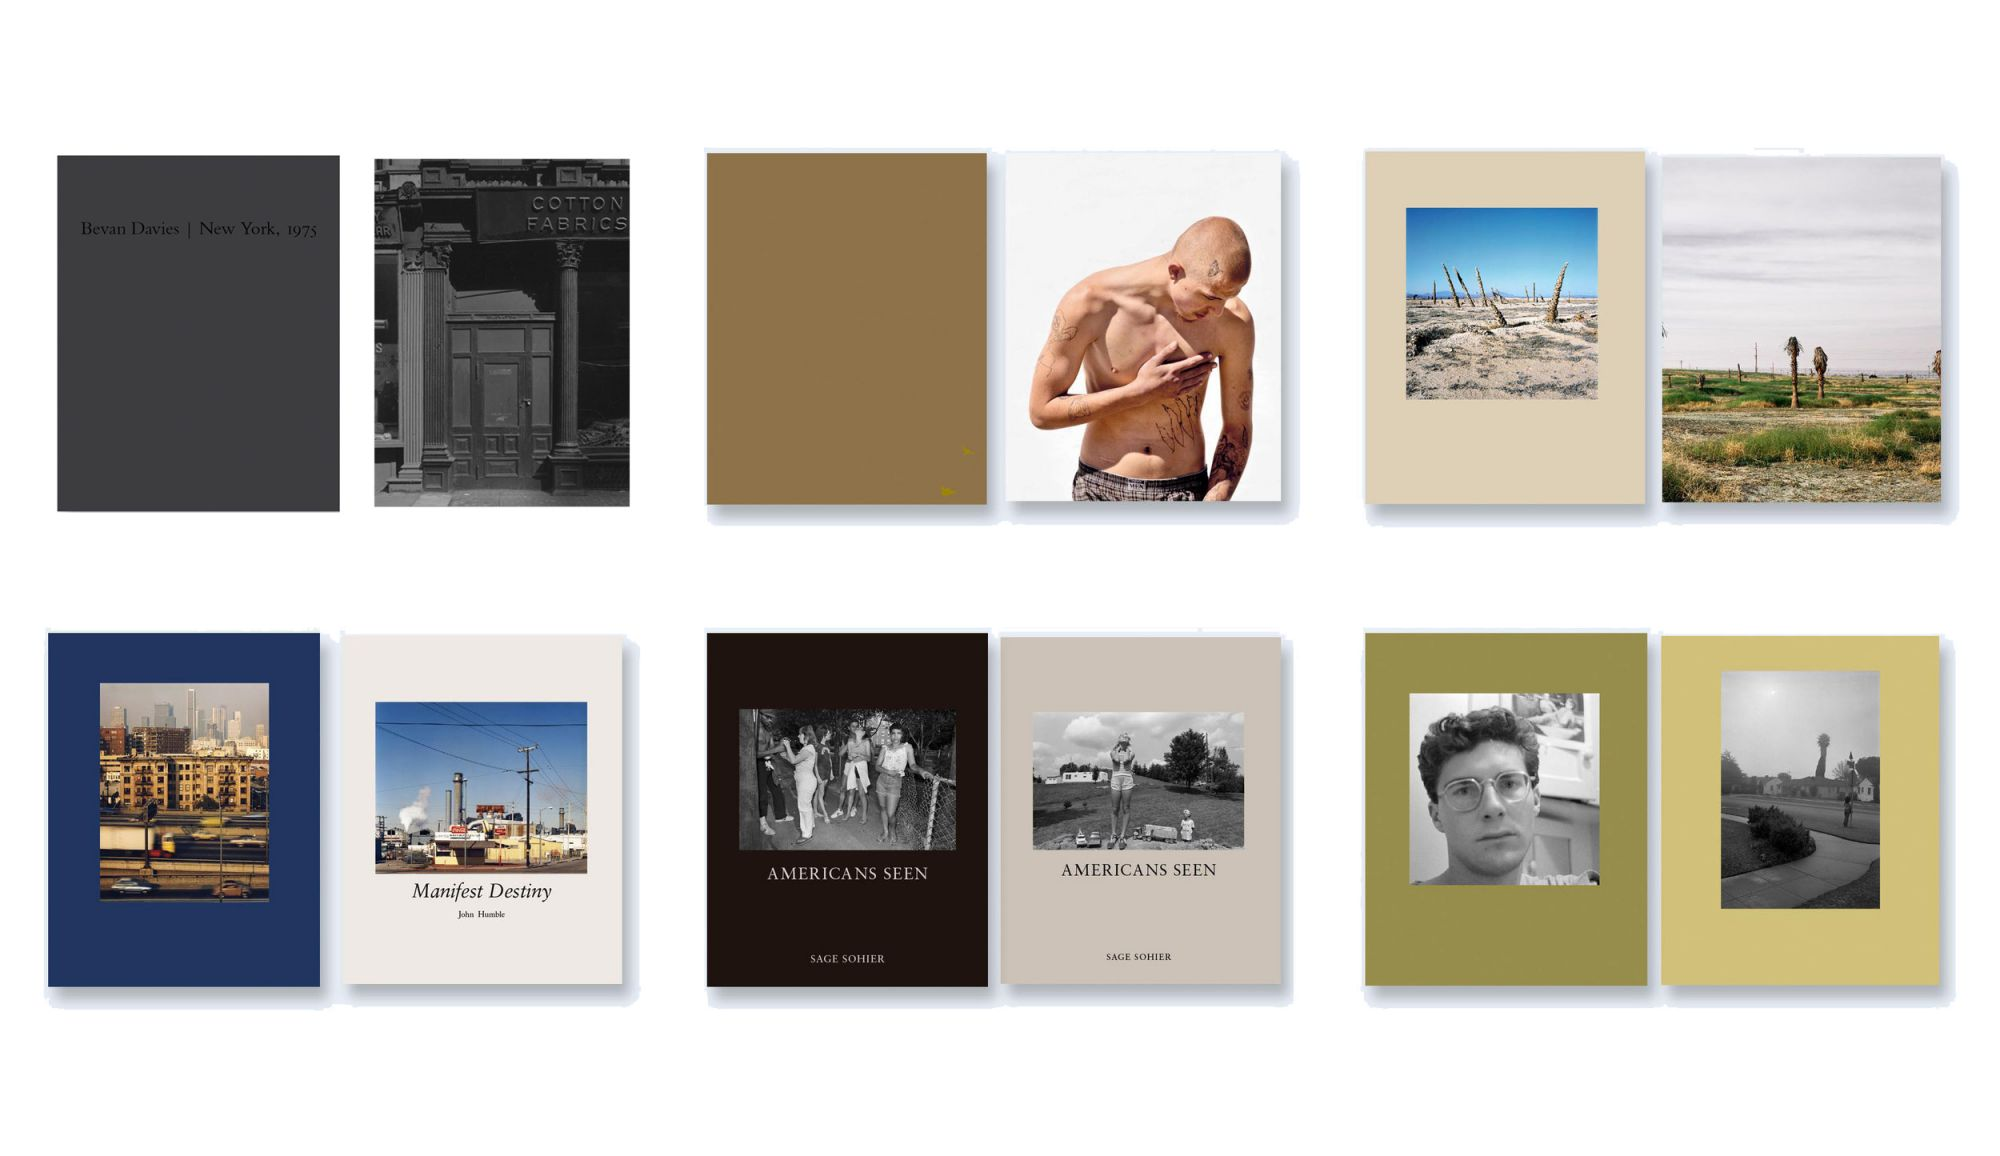 NZ Library: Set #3 (Six Volumes), Limited Edition [SIGNED]: Bevan Davies: New York, 1975; Katy Grannan: Hundreds of Sparrows: Volume One; Anthony Hernandez: Discarded; John Humble: Manifest Destiny; Sage Sohier: Americans Seen; Mark Steinmetz: Angel City West: Volume Two